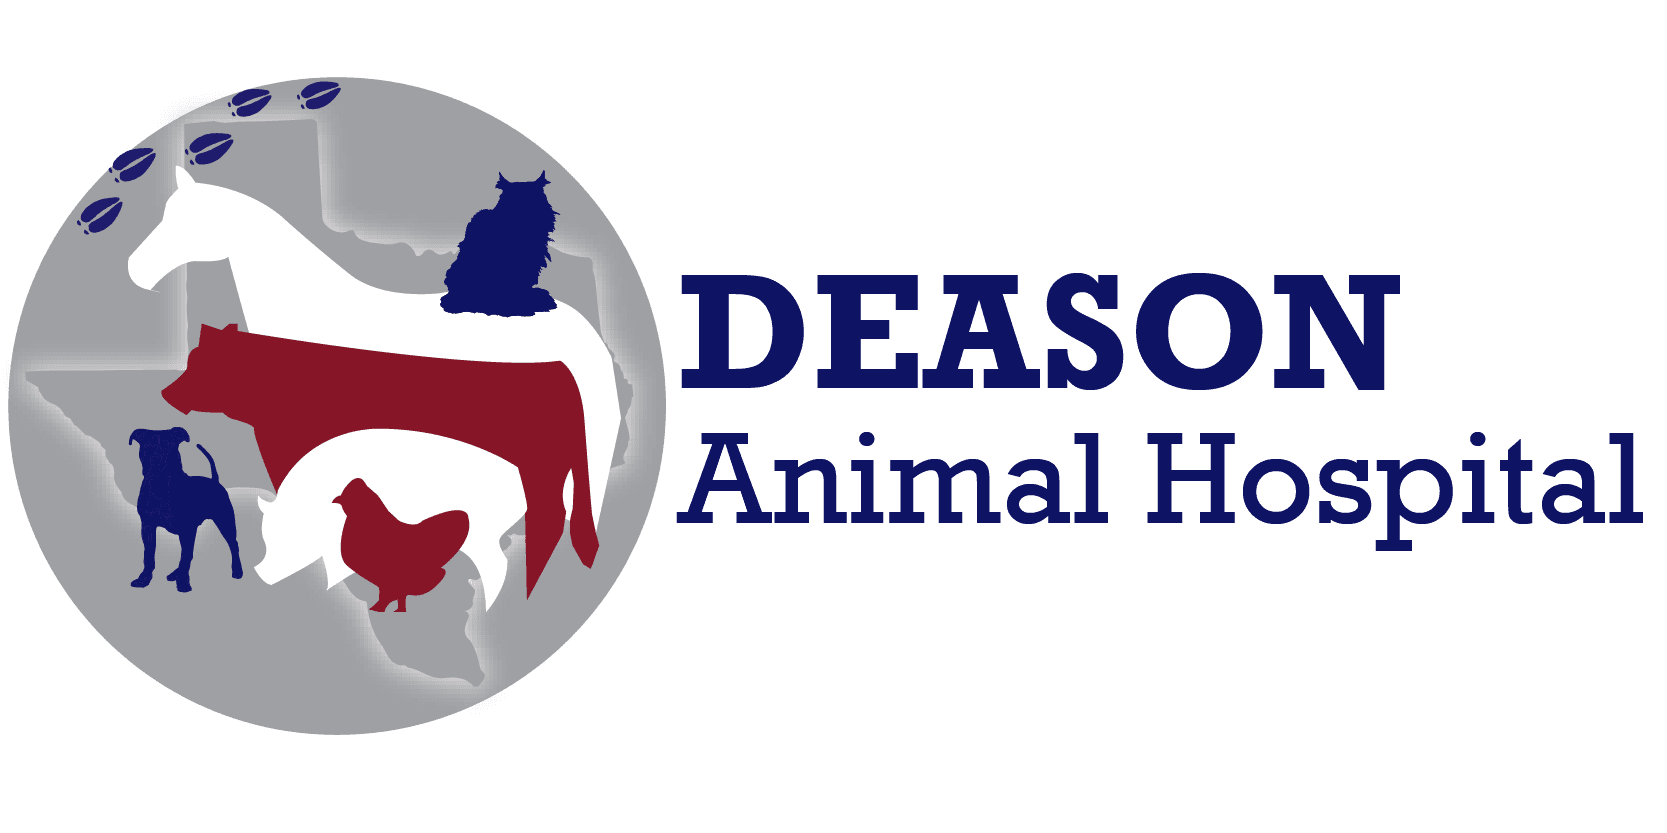 Veterinary pharmacy near Floresville Texas, Stockdale, Pleasanton and Wilson County Texas